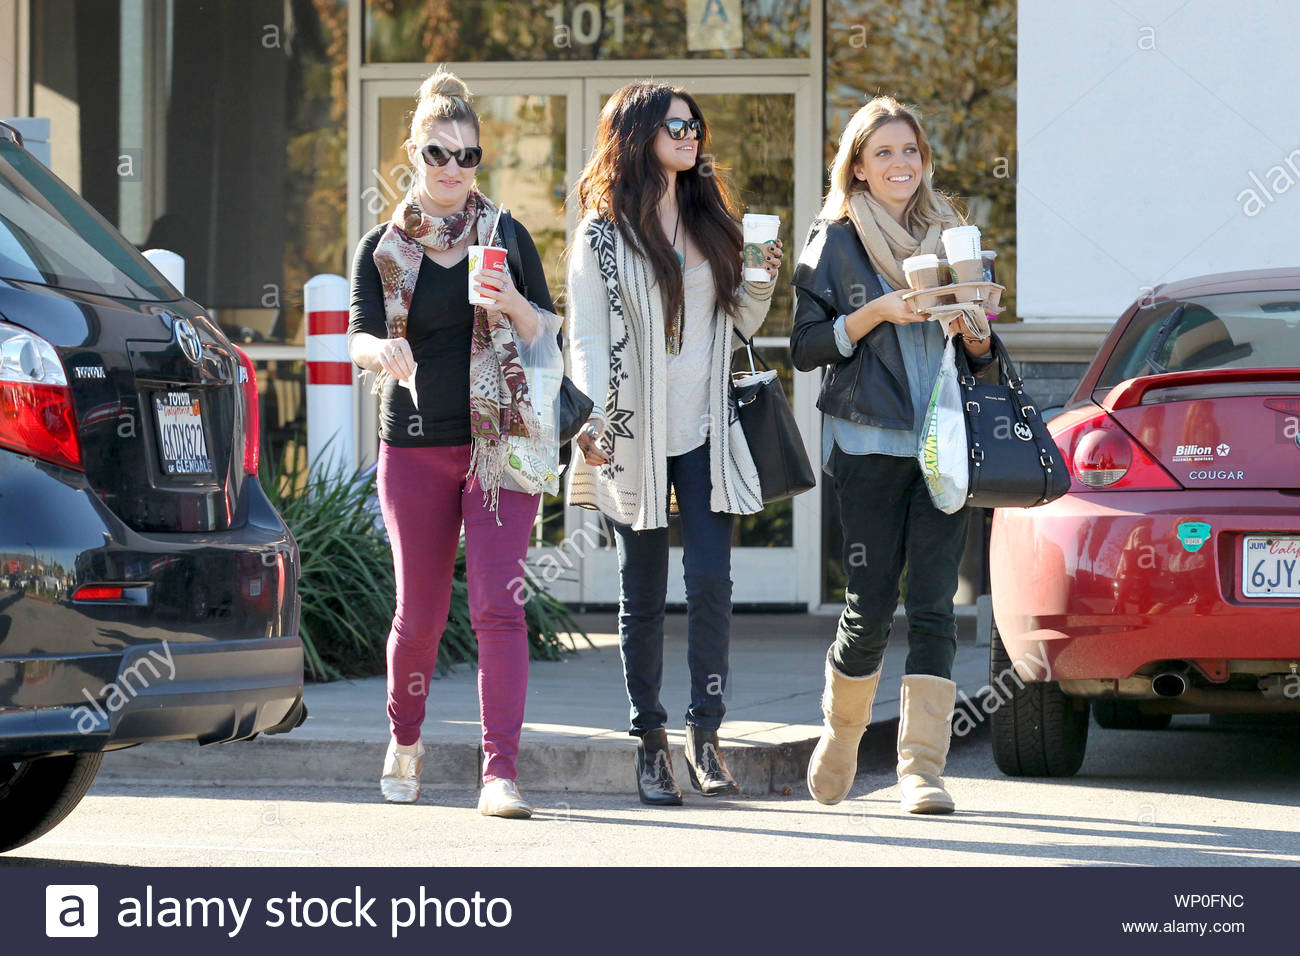 burbank ca after selena gomez grabbed some lunch from mcdonalds earlier today she made her way alamy